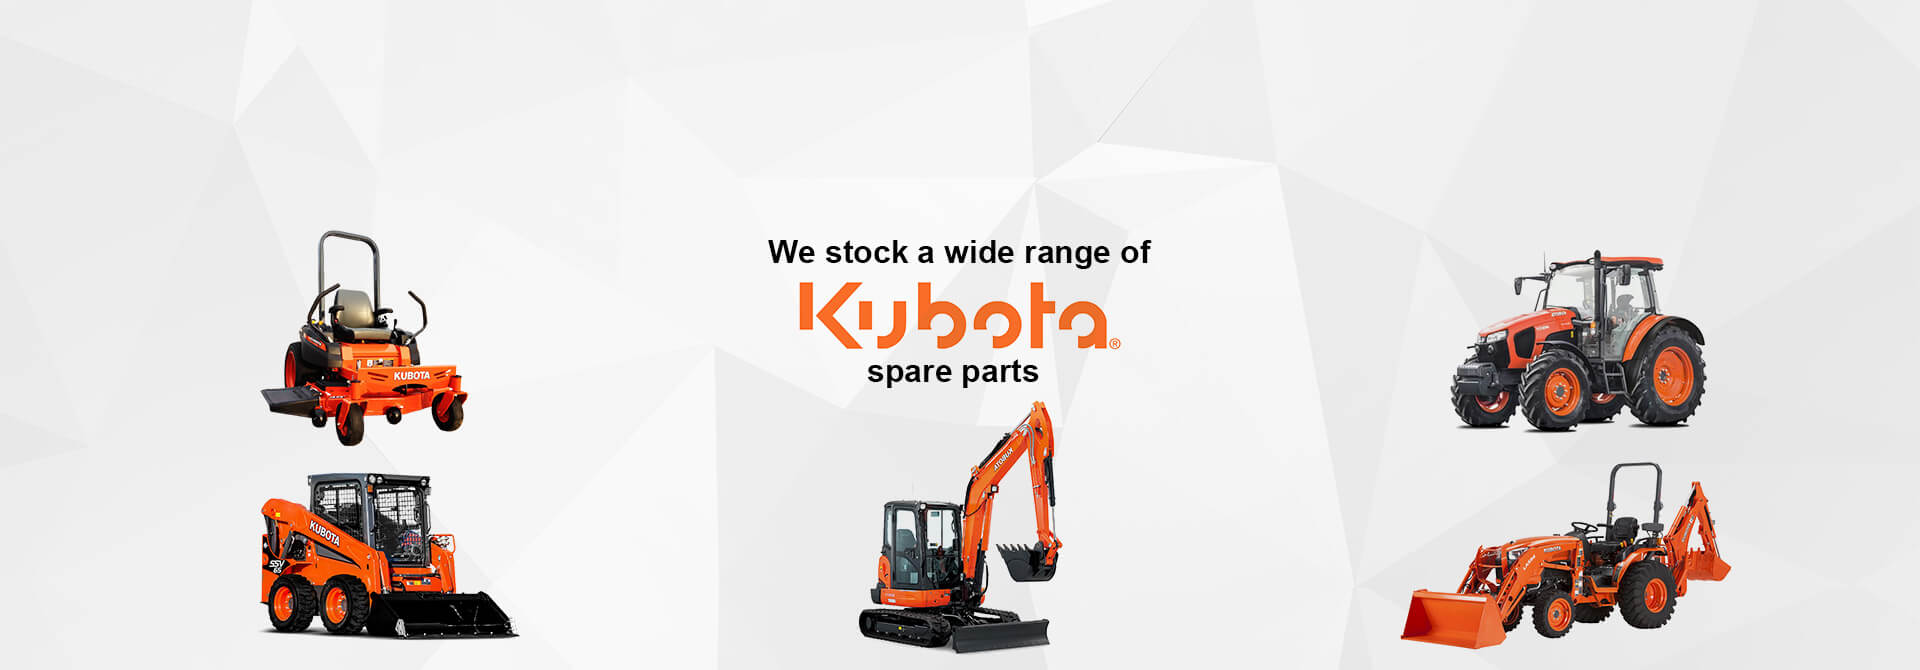 Kubota Engine Parts, Kubota Tractor Parts